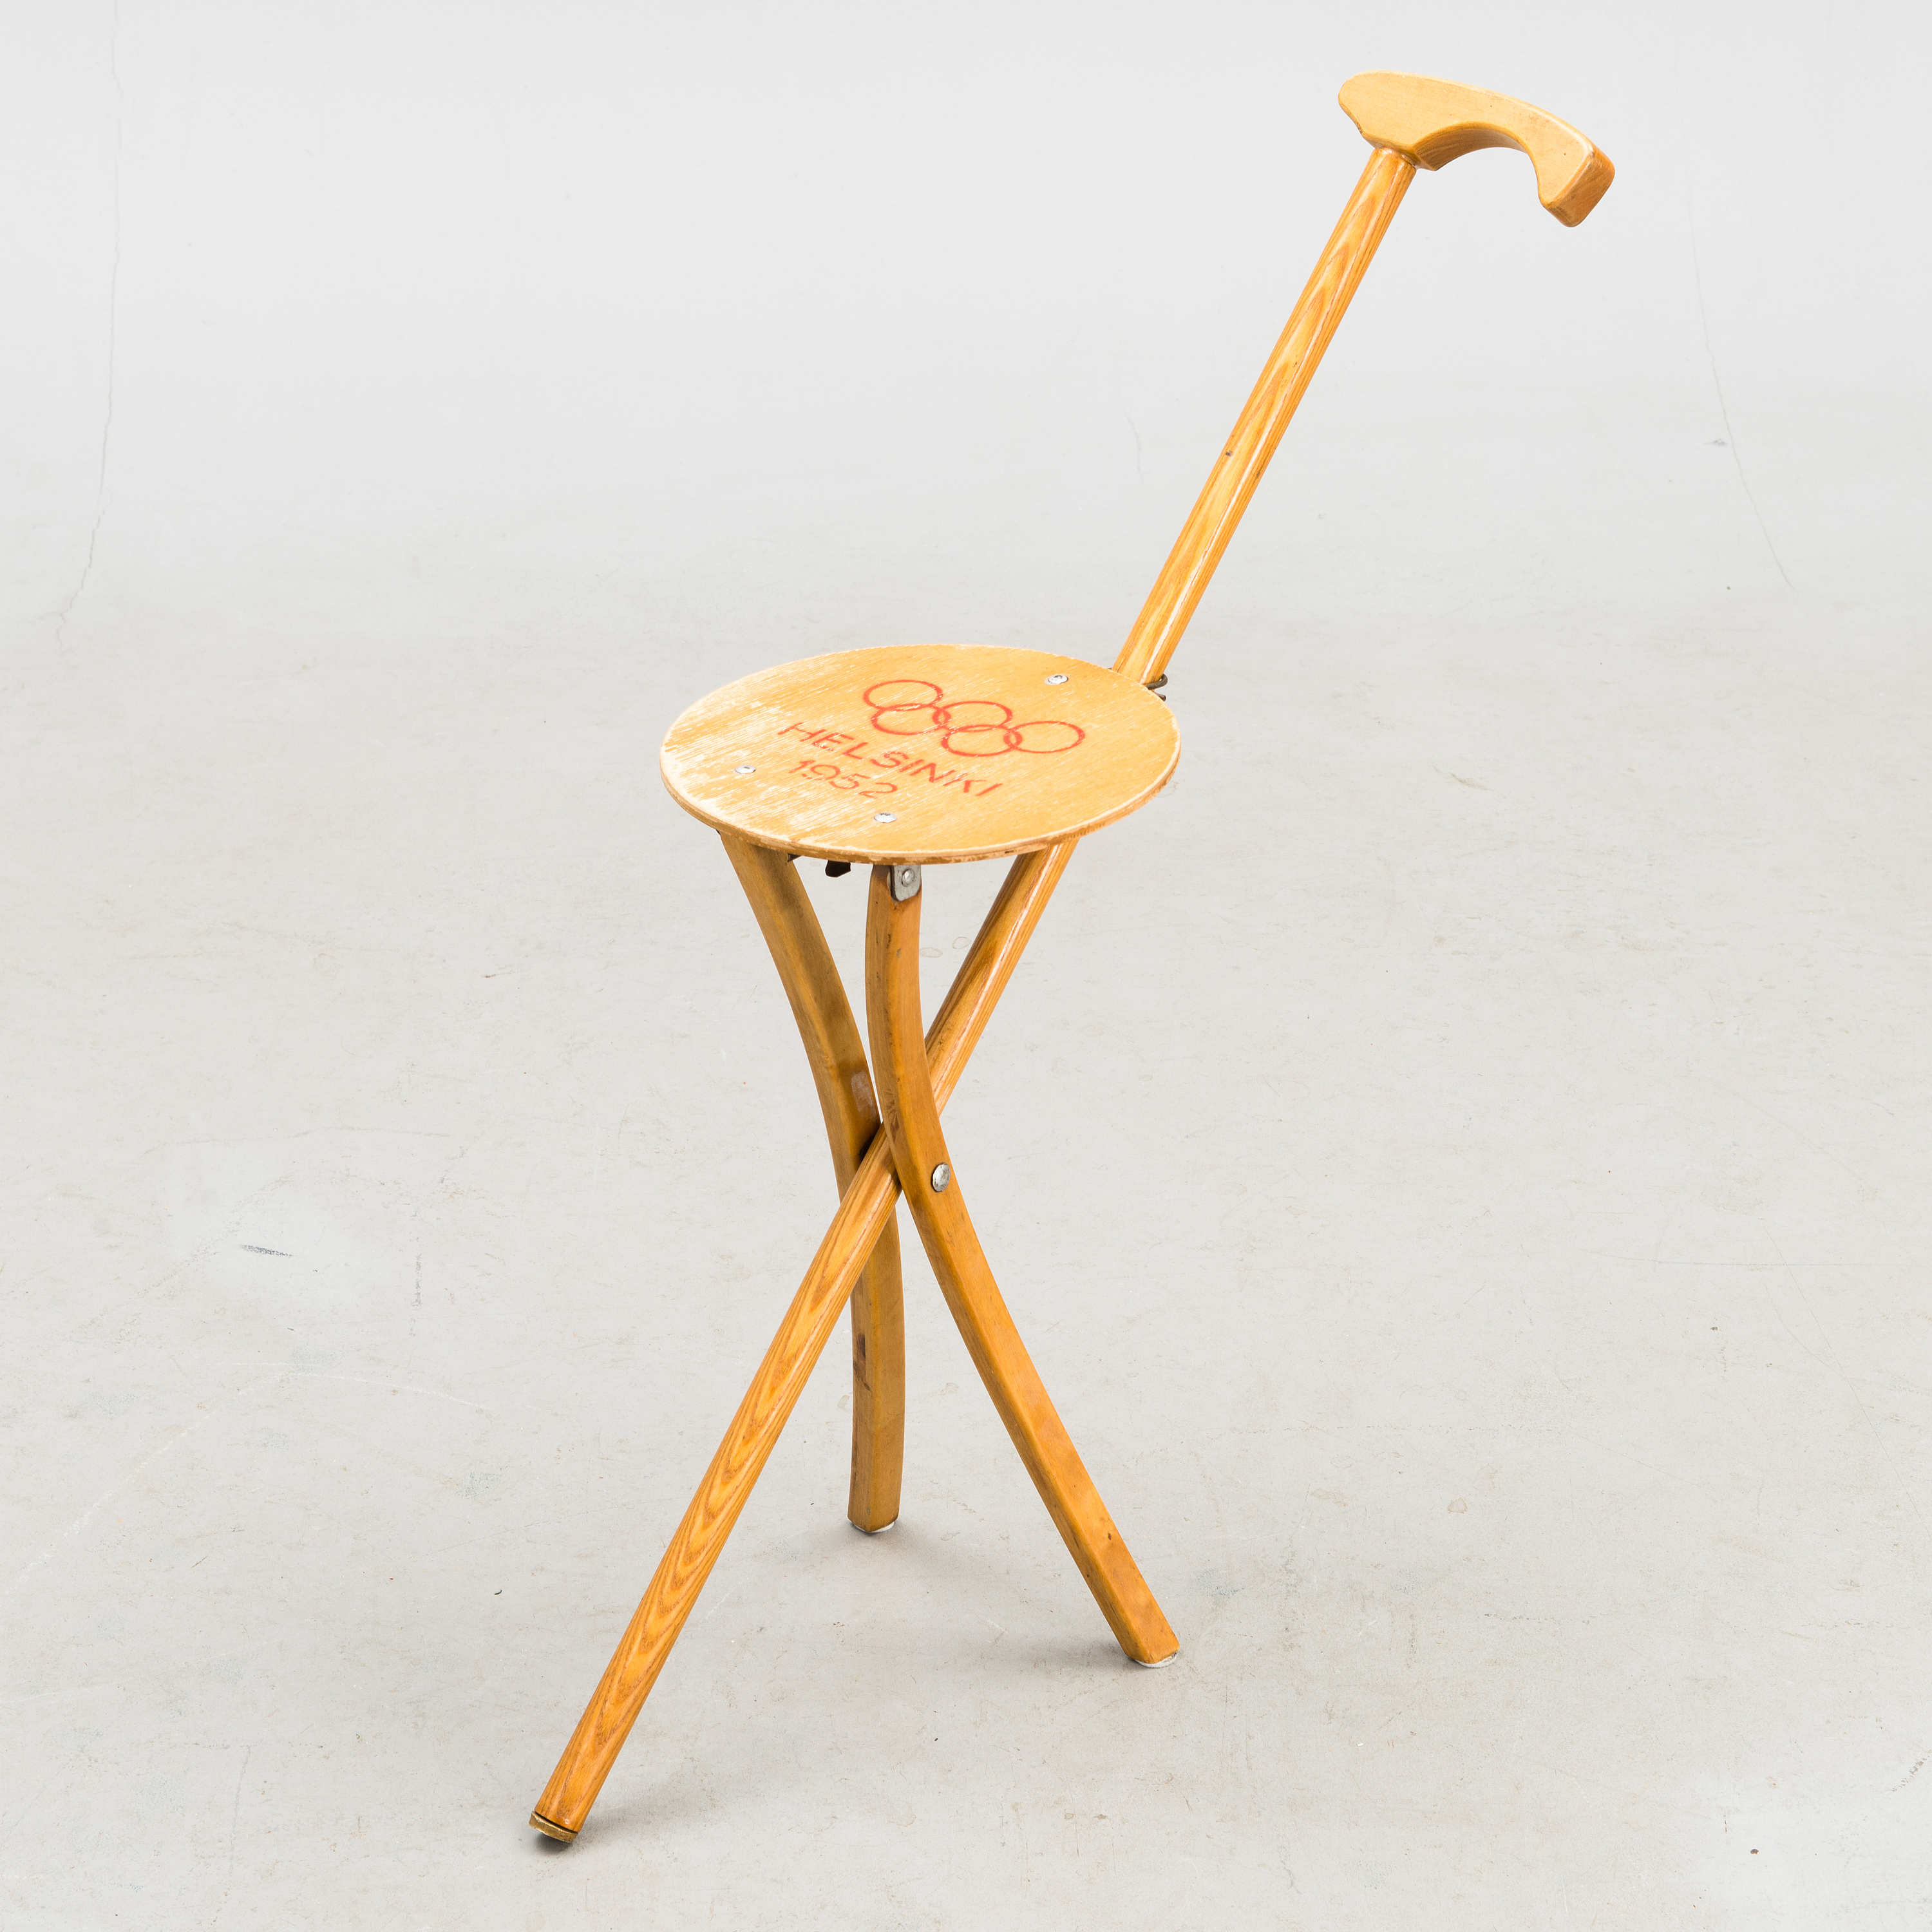 A Finnish Folding Chair Designed For The 1952 Summer